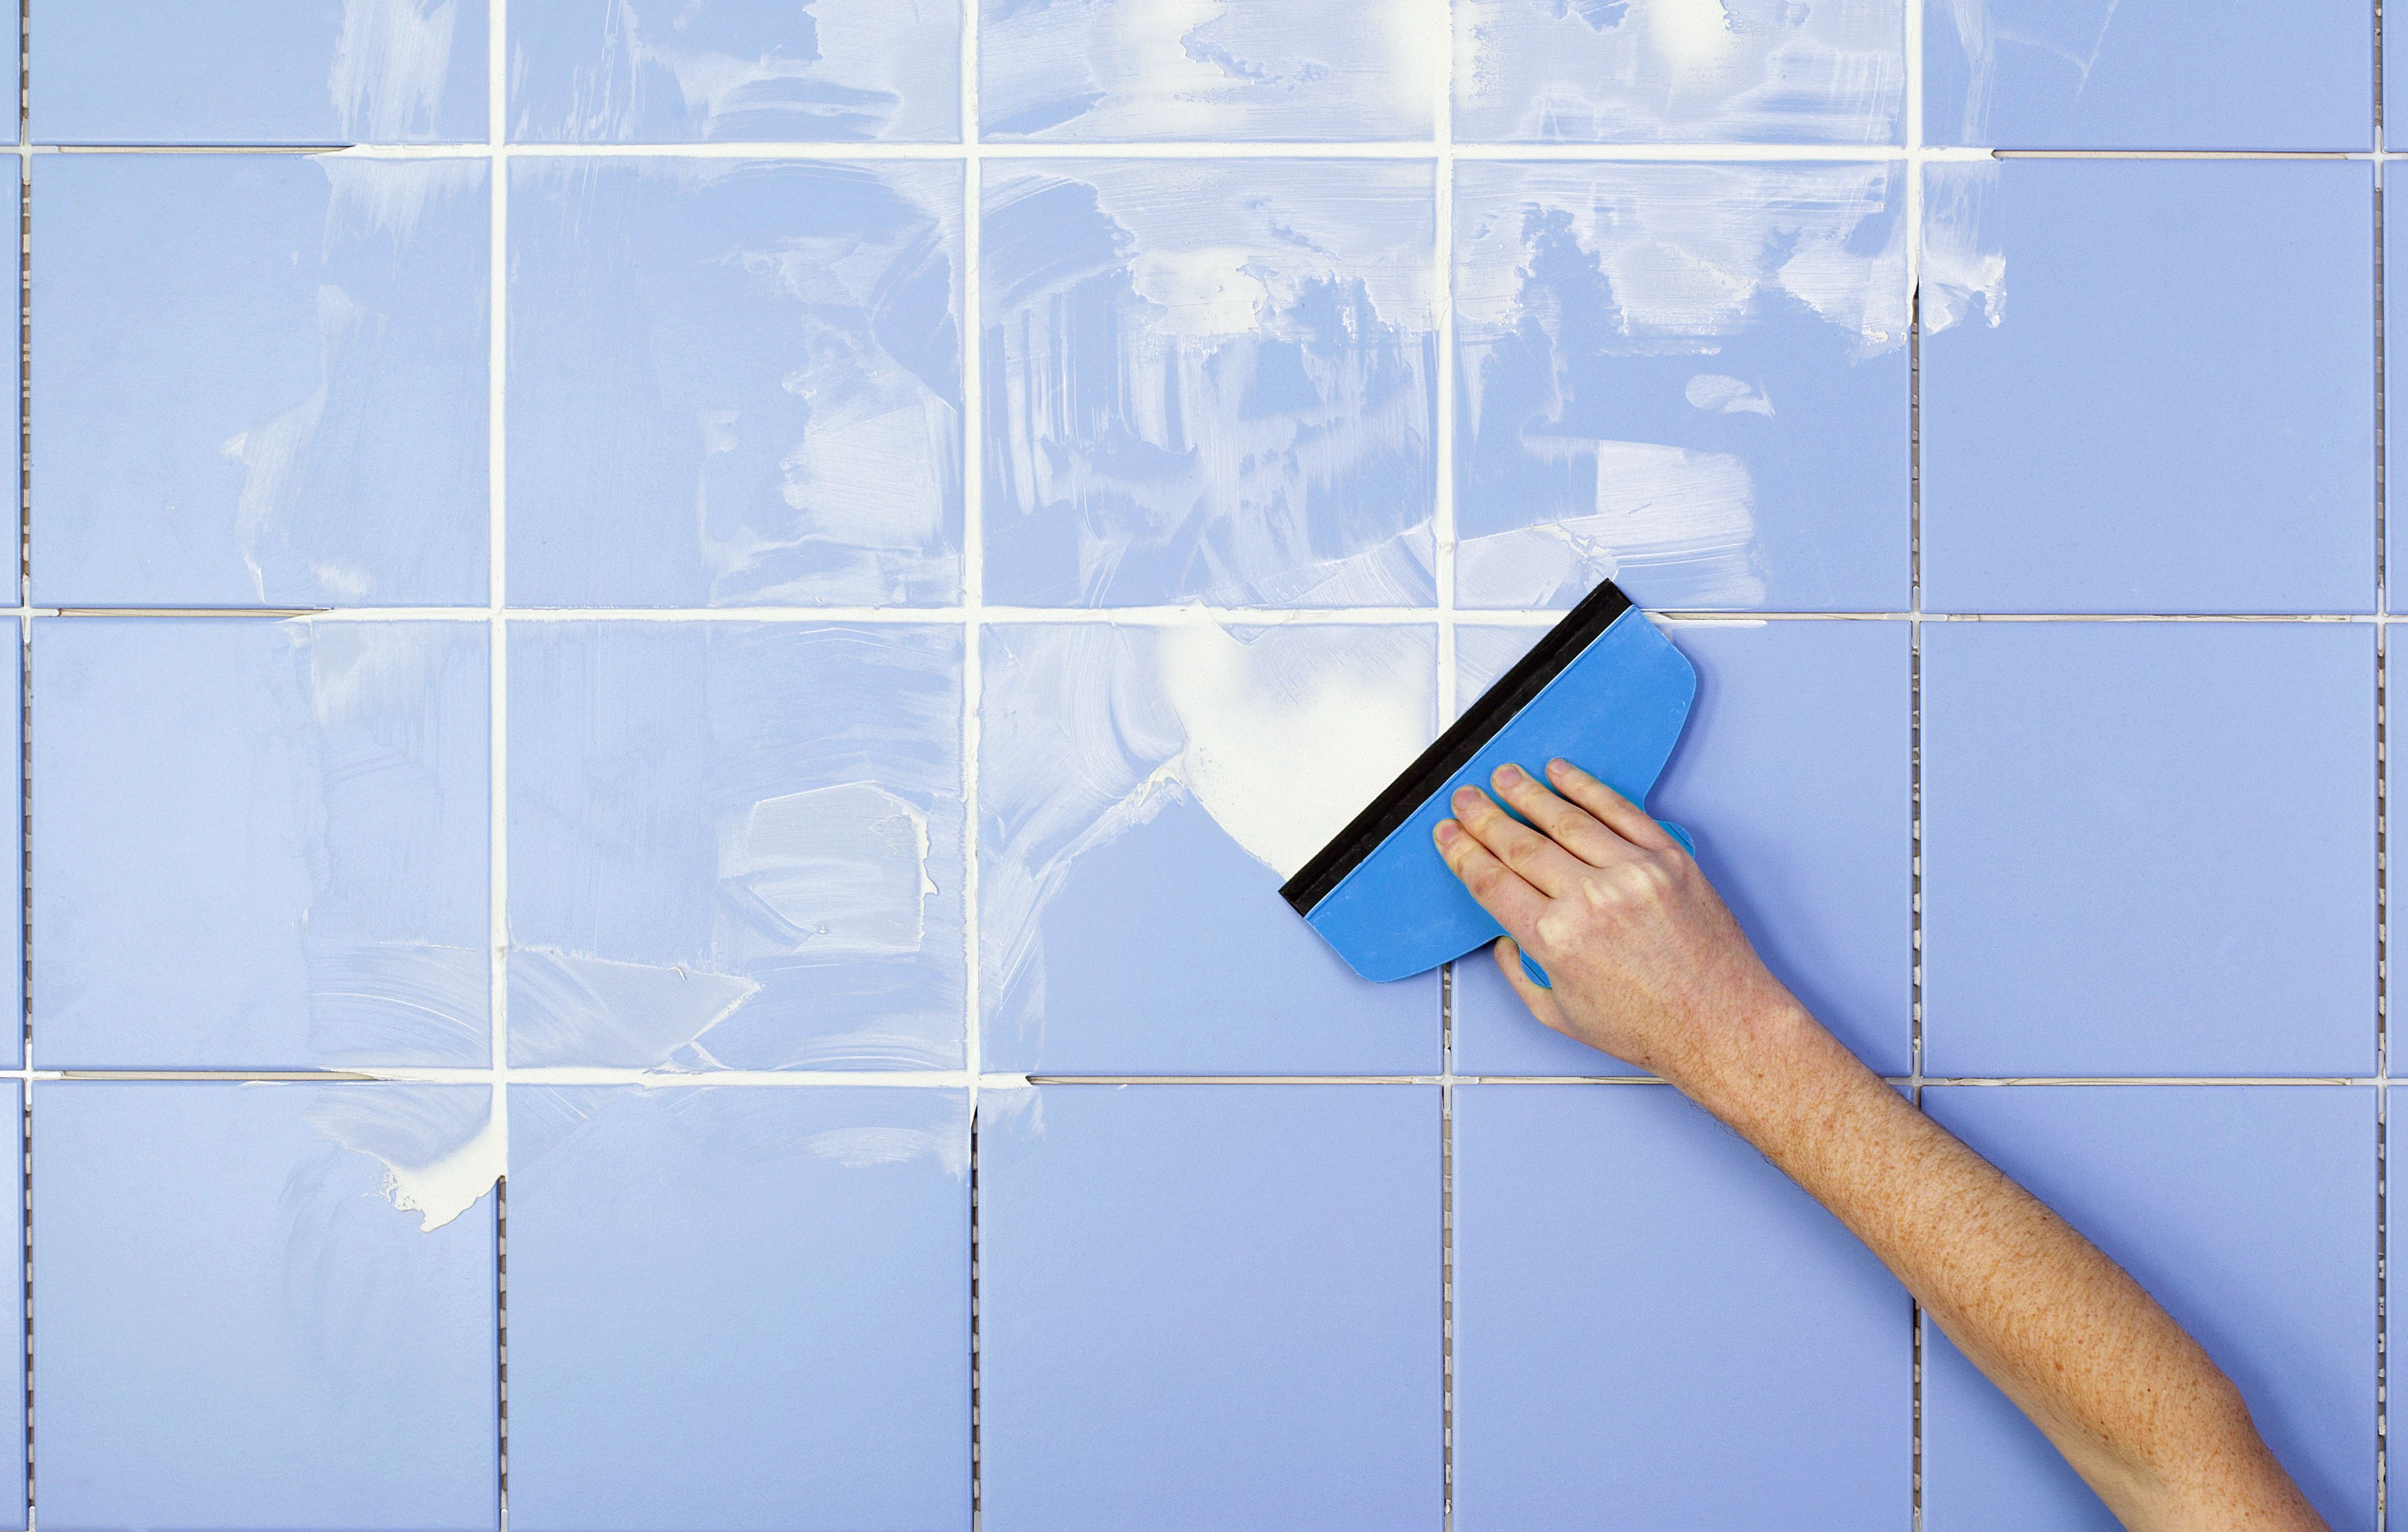 New grout makes a tile installation look brandnew in